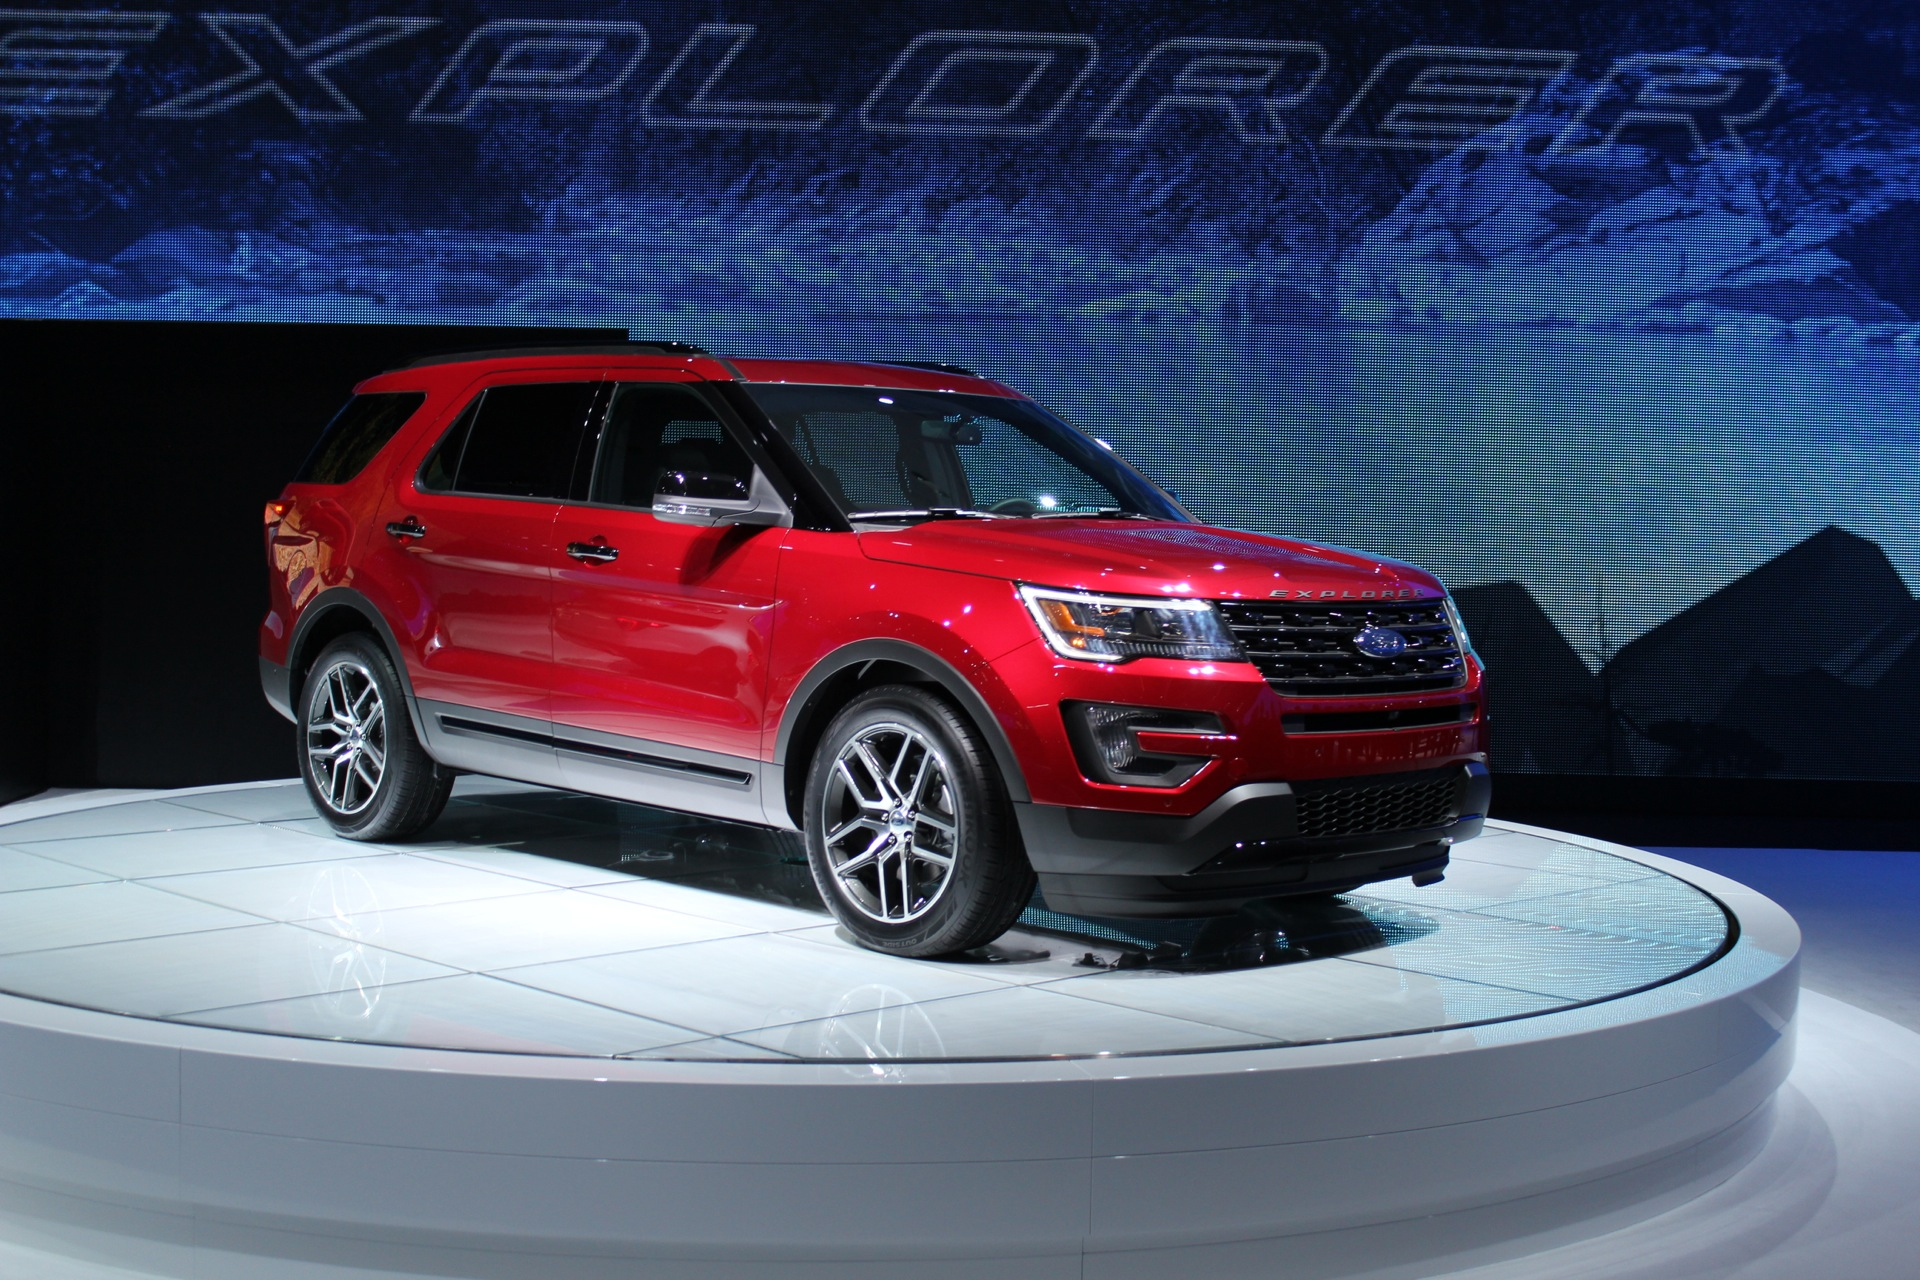 2016 ford explorer preview 2014 los angeles auto show. Black Bedroom Furniture Sets. Home Design Ideas